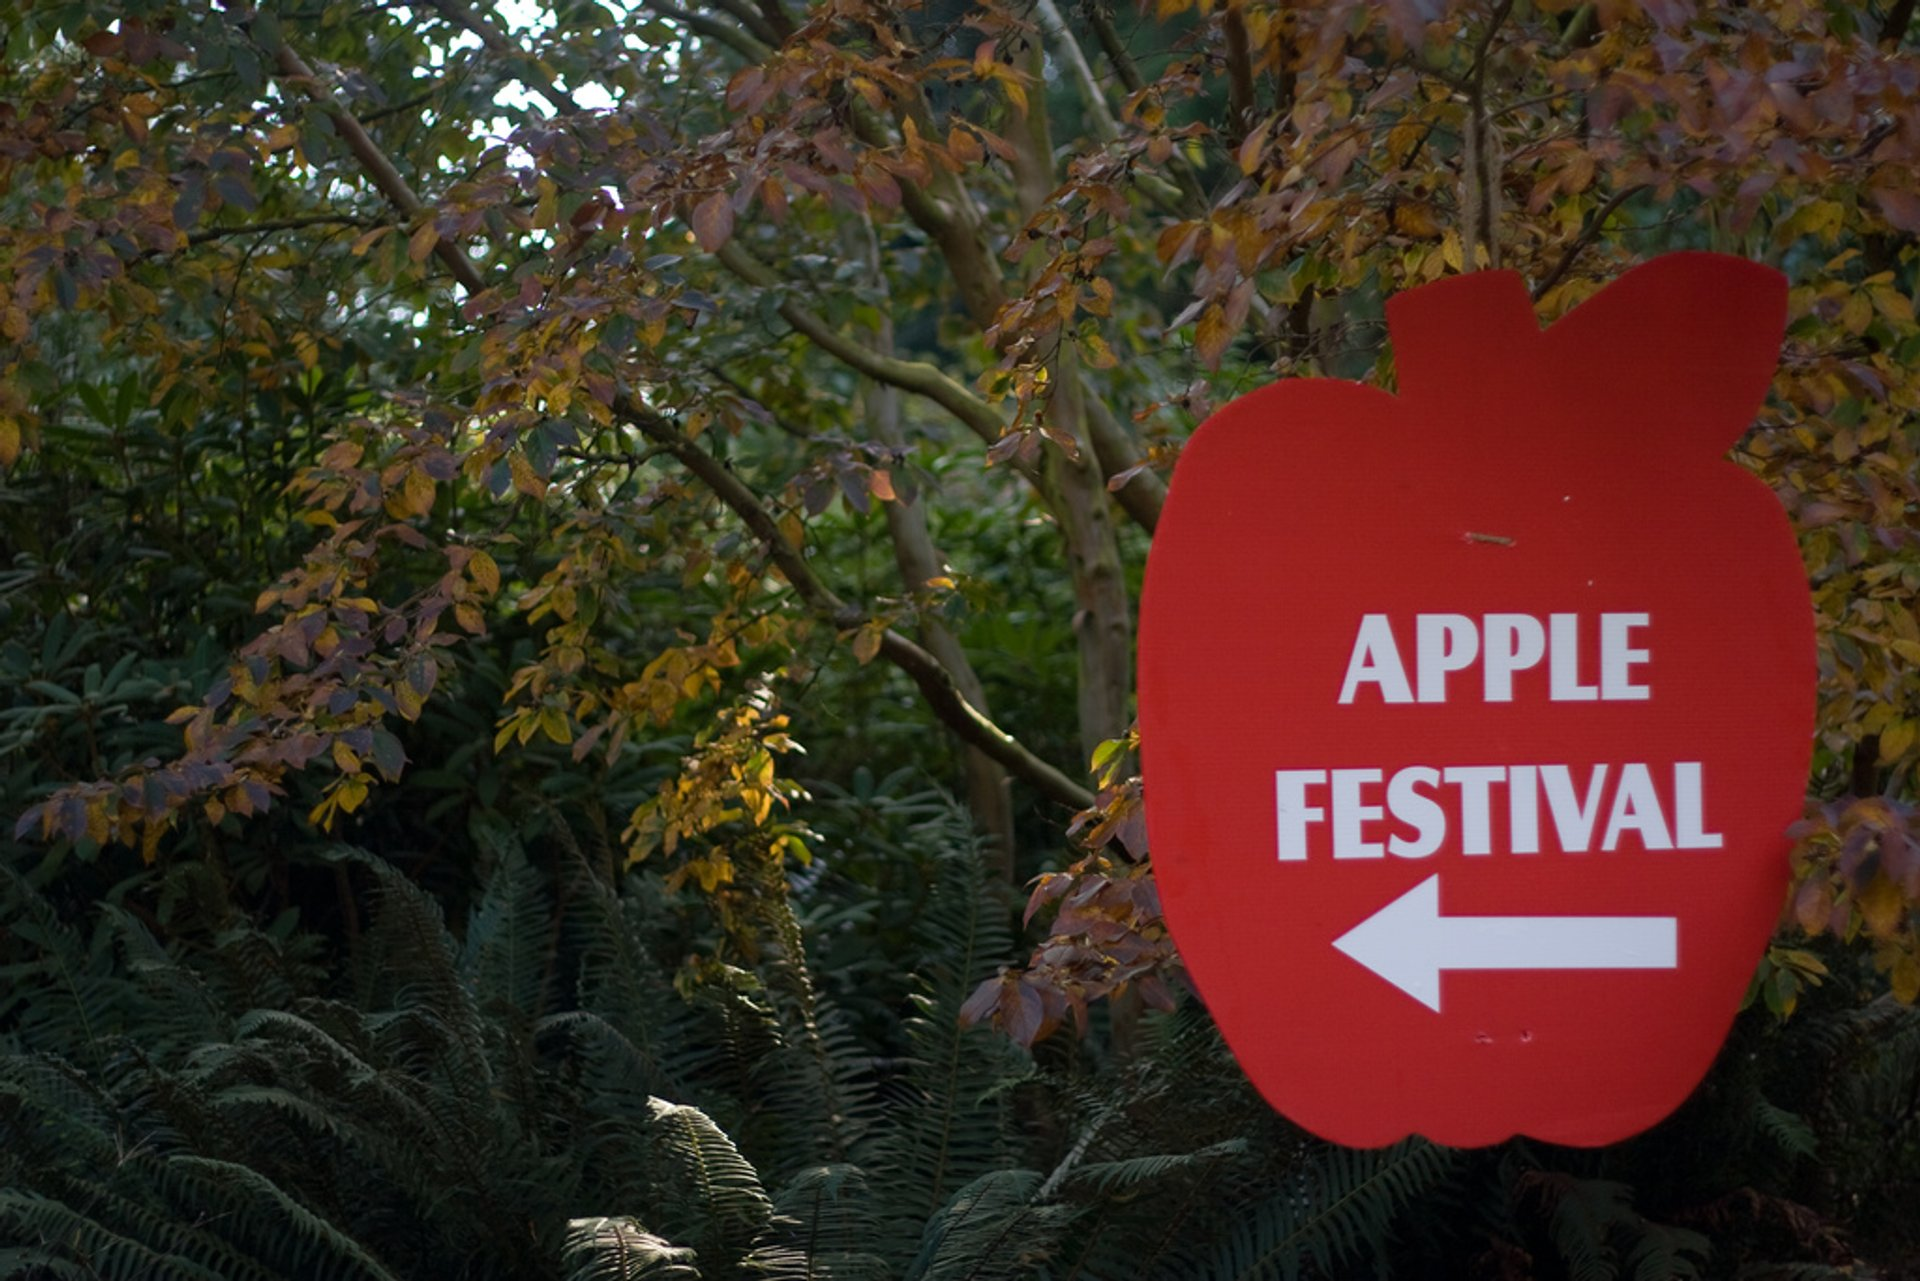 UBC Apple Festival in Vancouver 2019 - Best Time